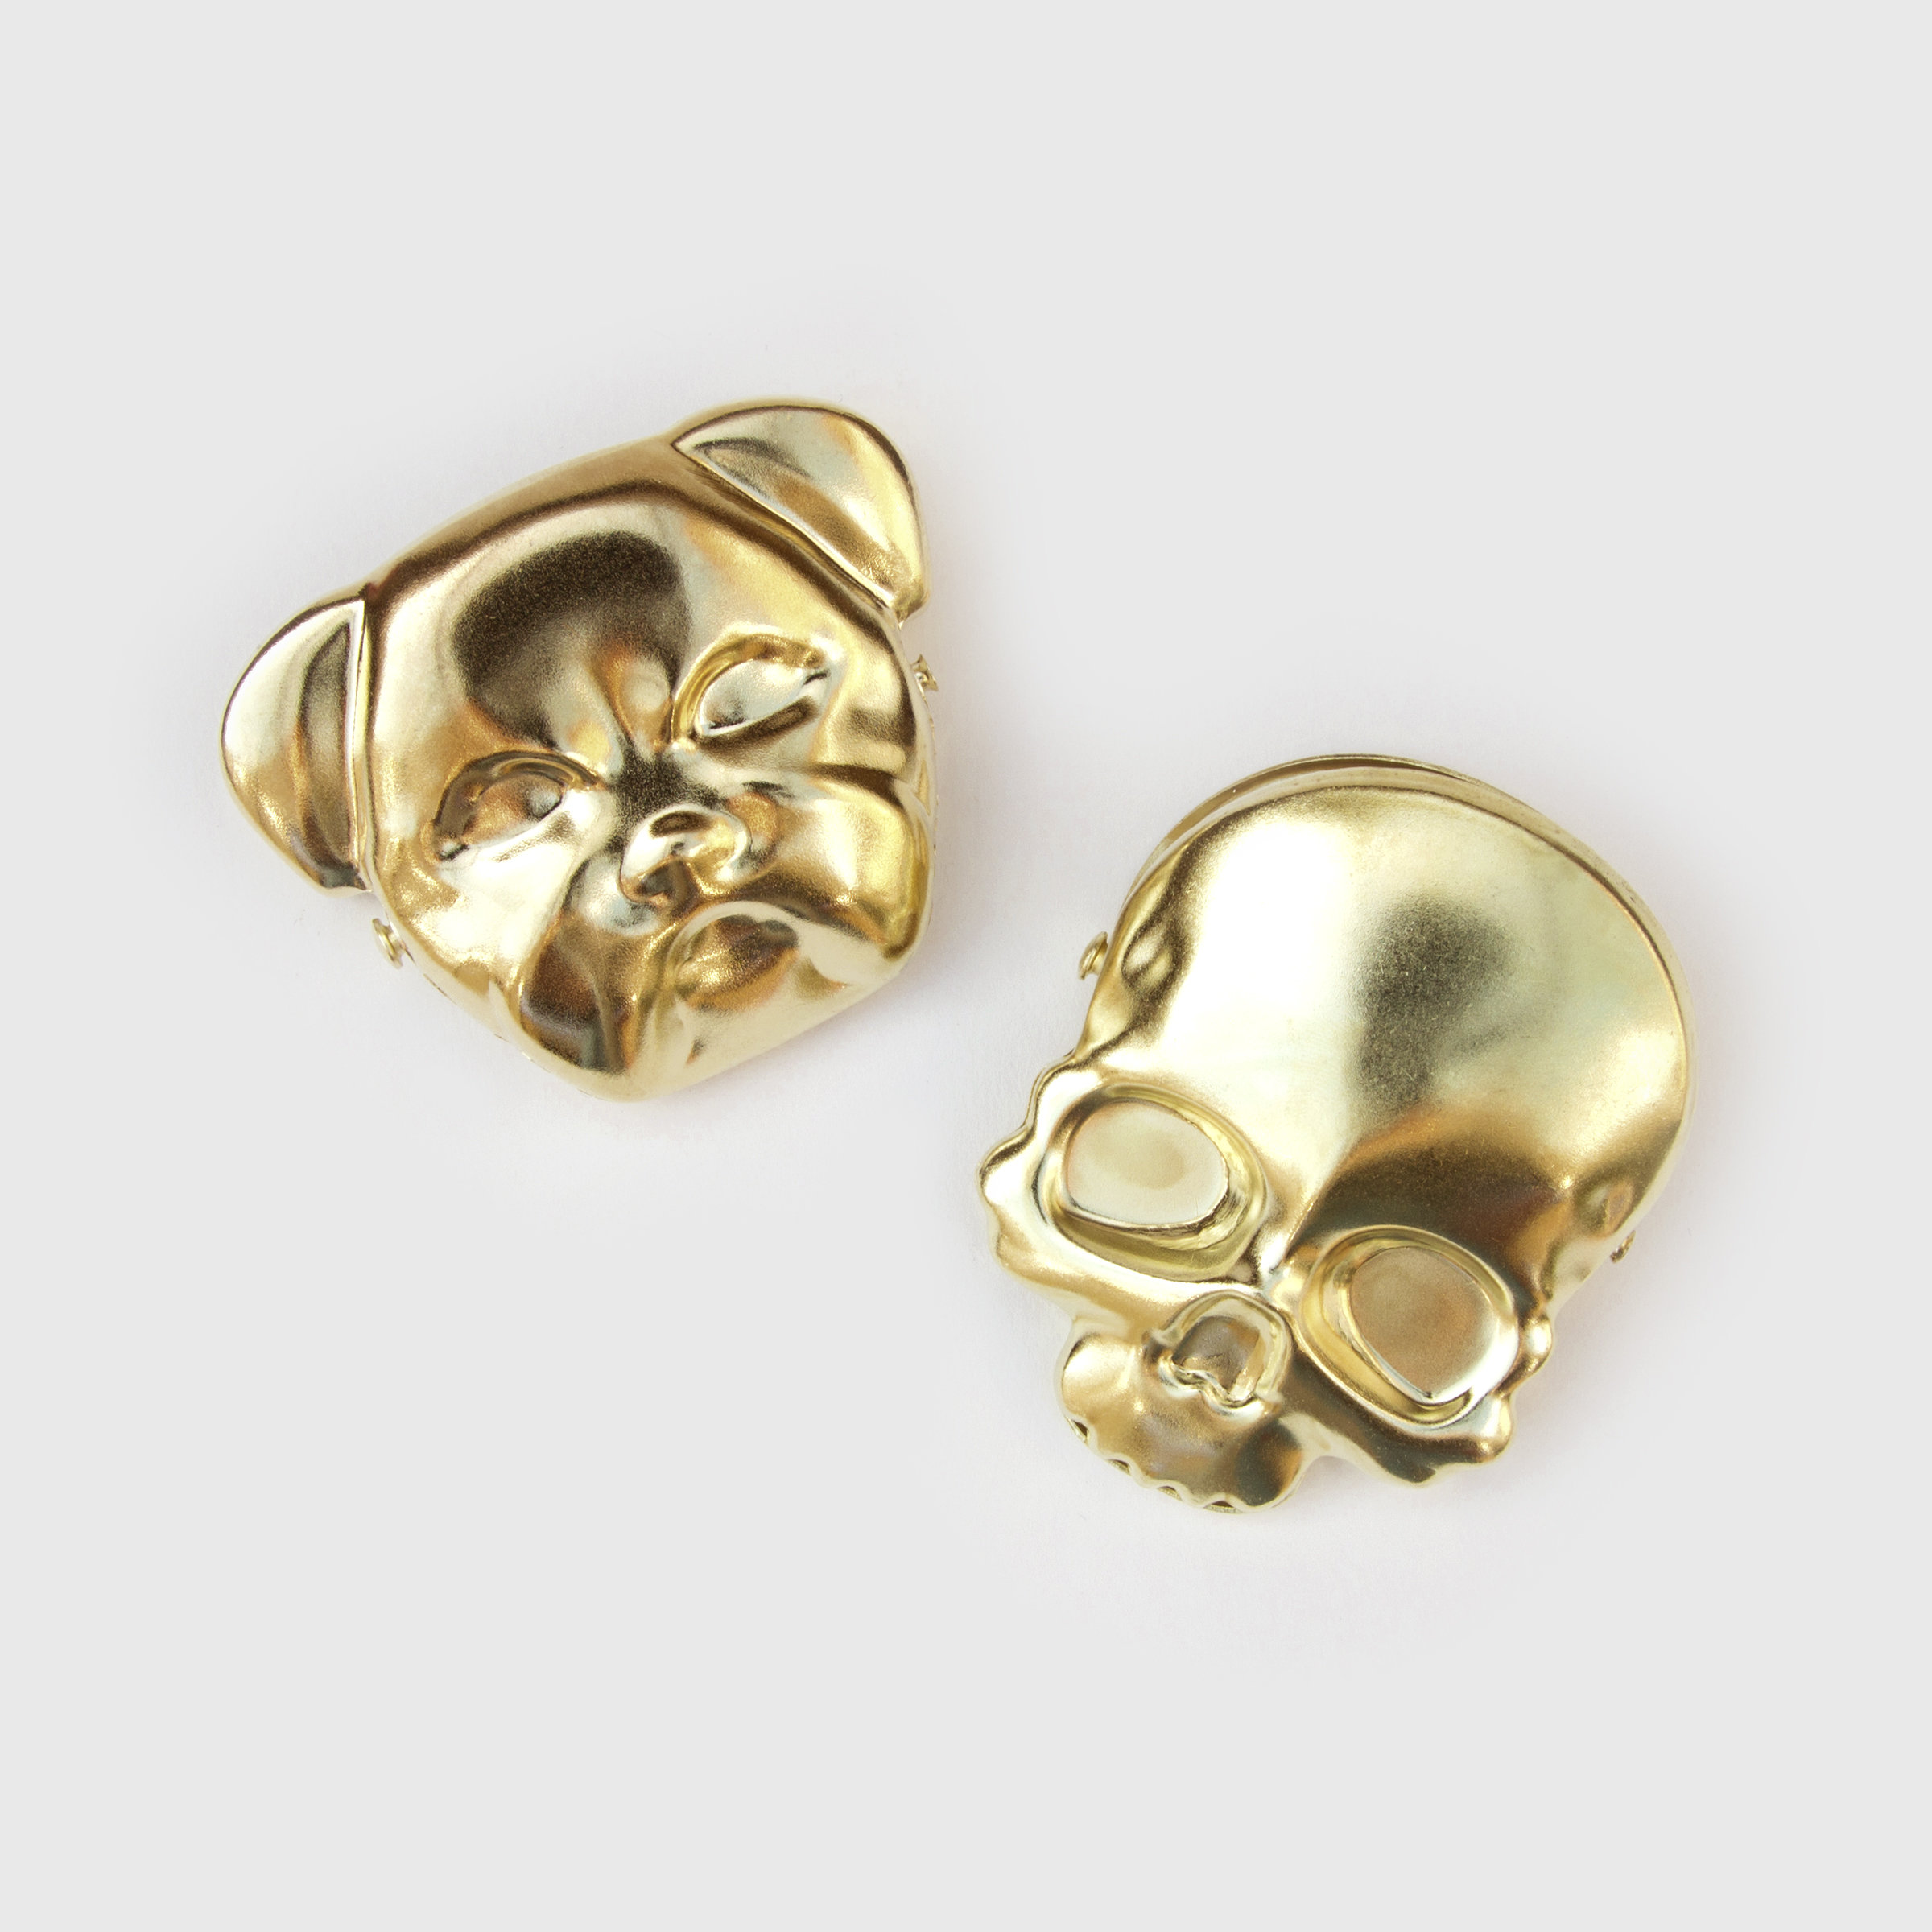 Brass skull and bulldog clip